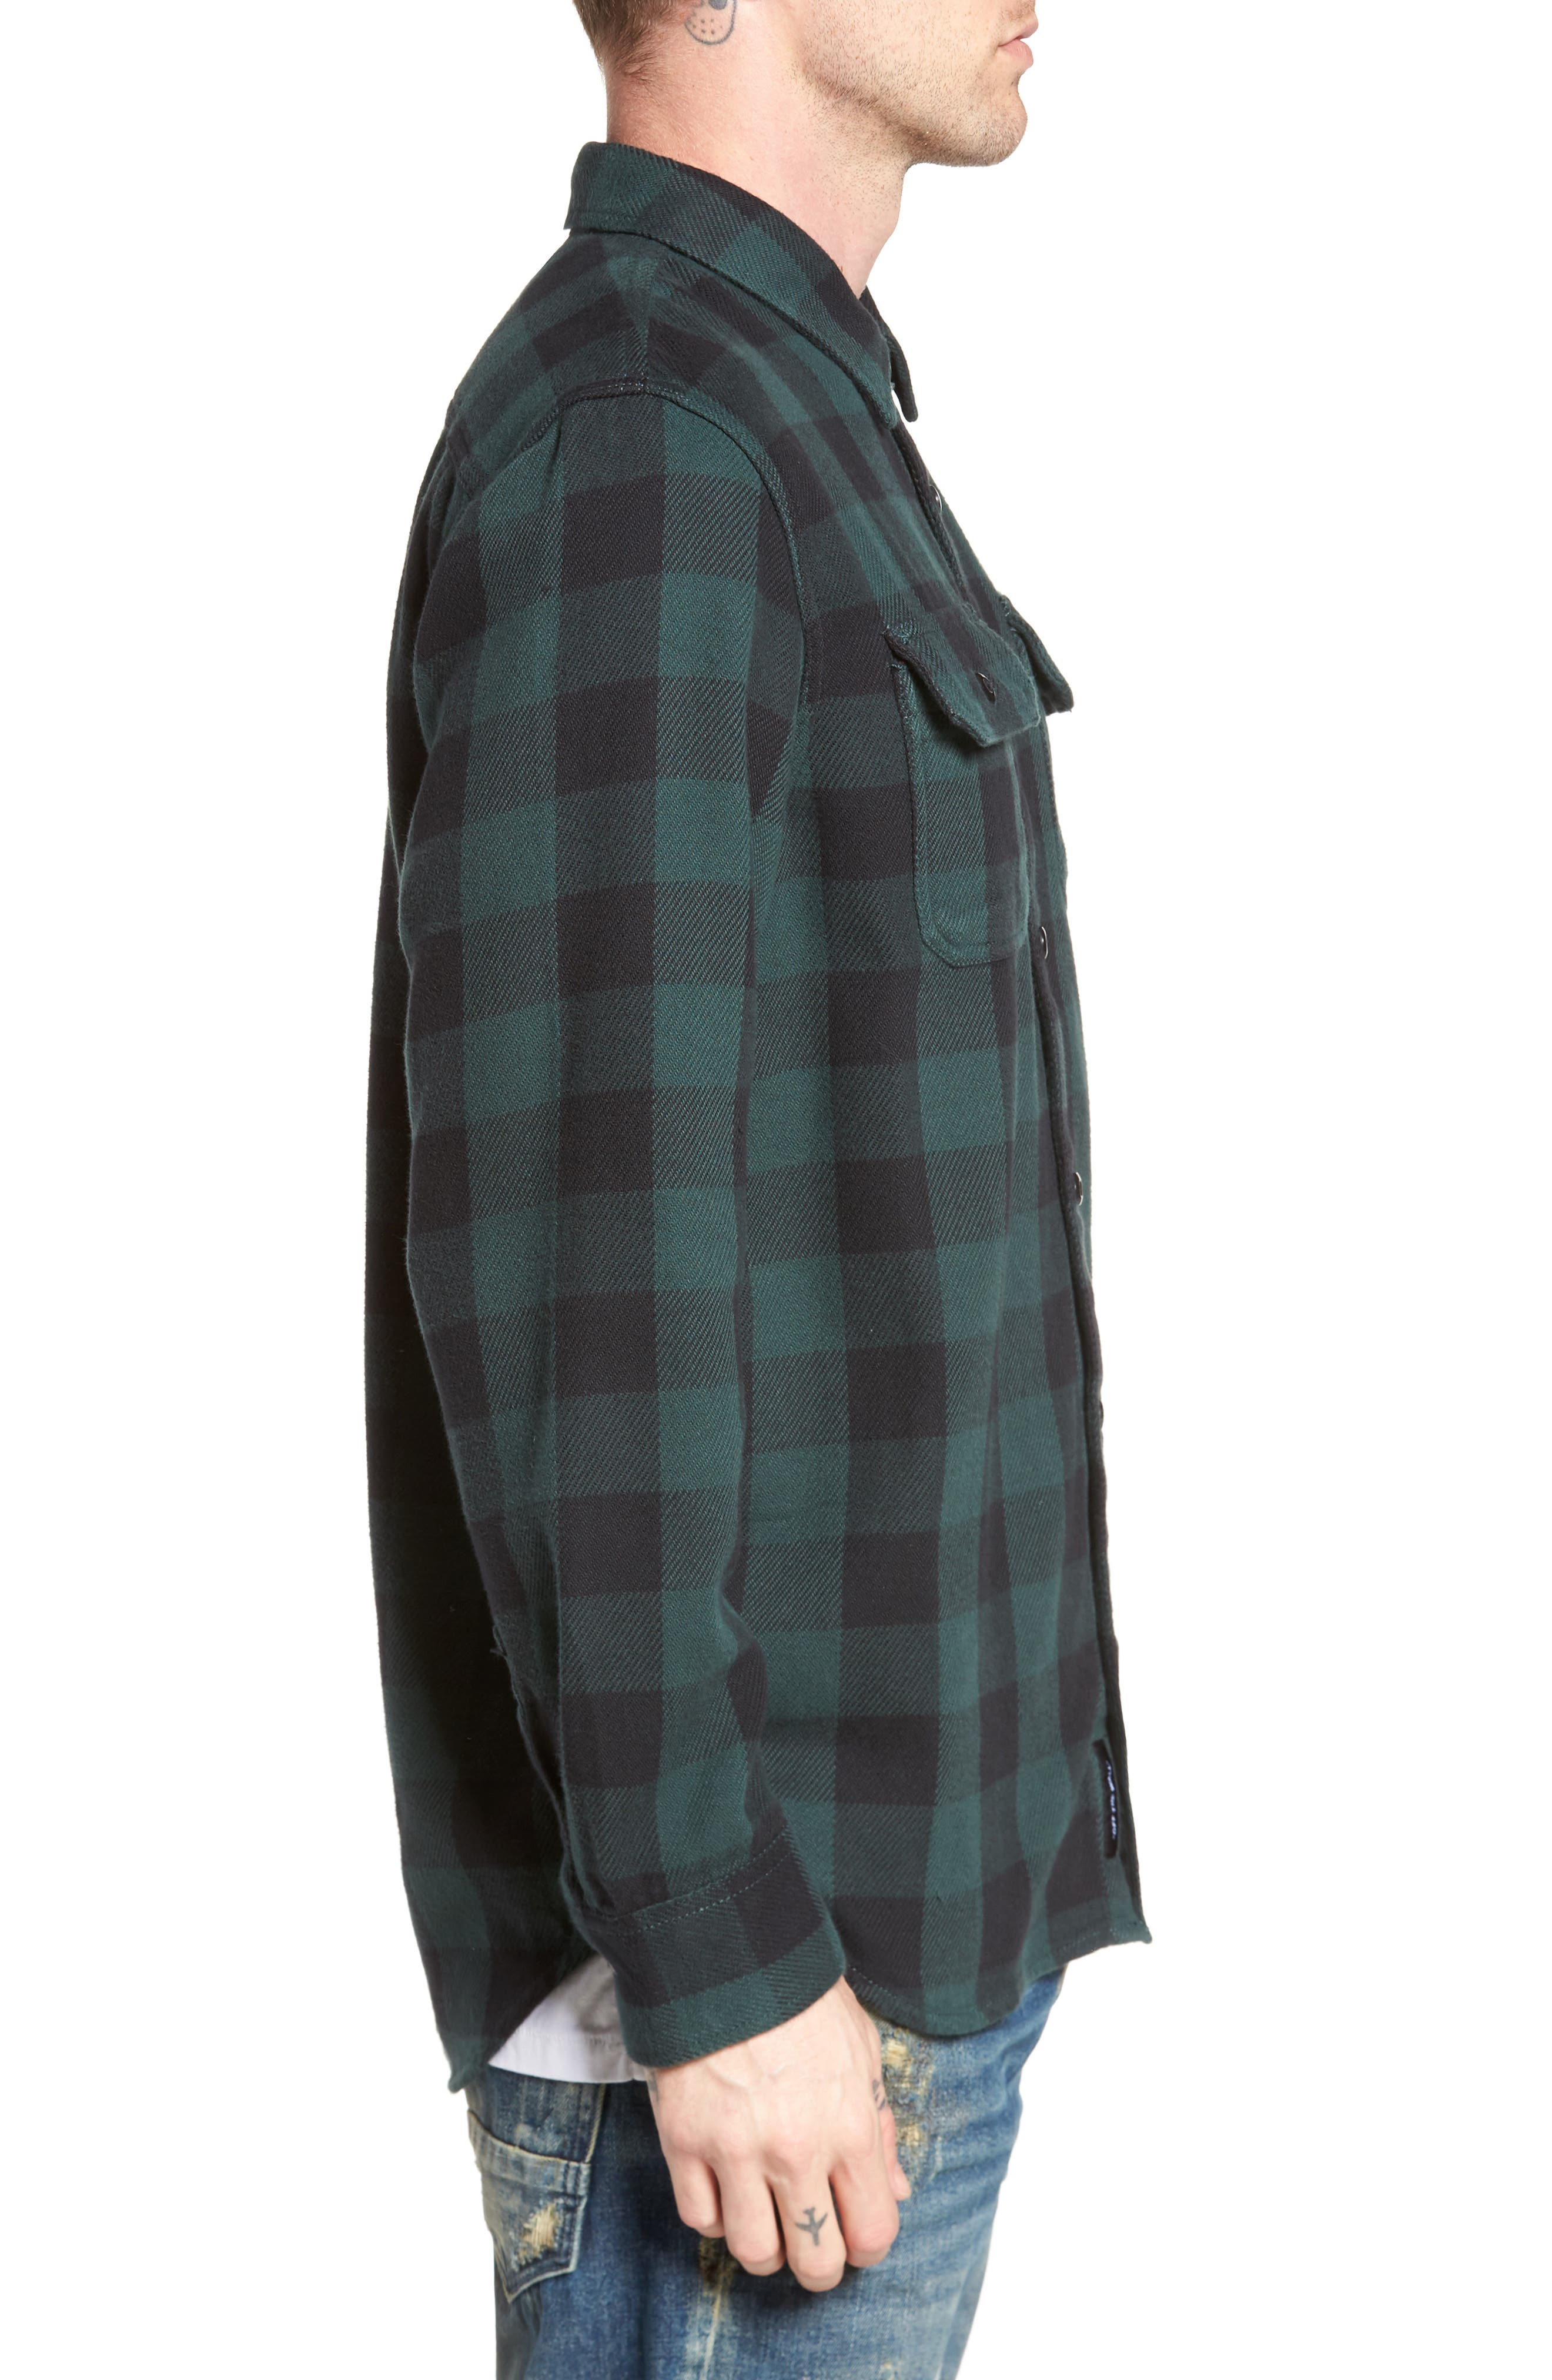 Wisner Plaid Shirt,                             Alternate thumbnail 3, color,                             001